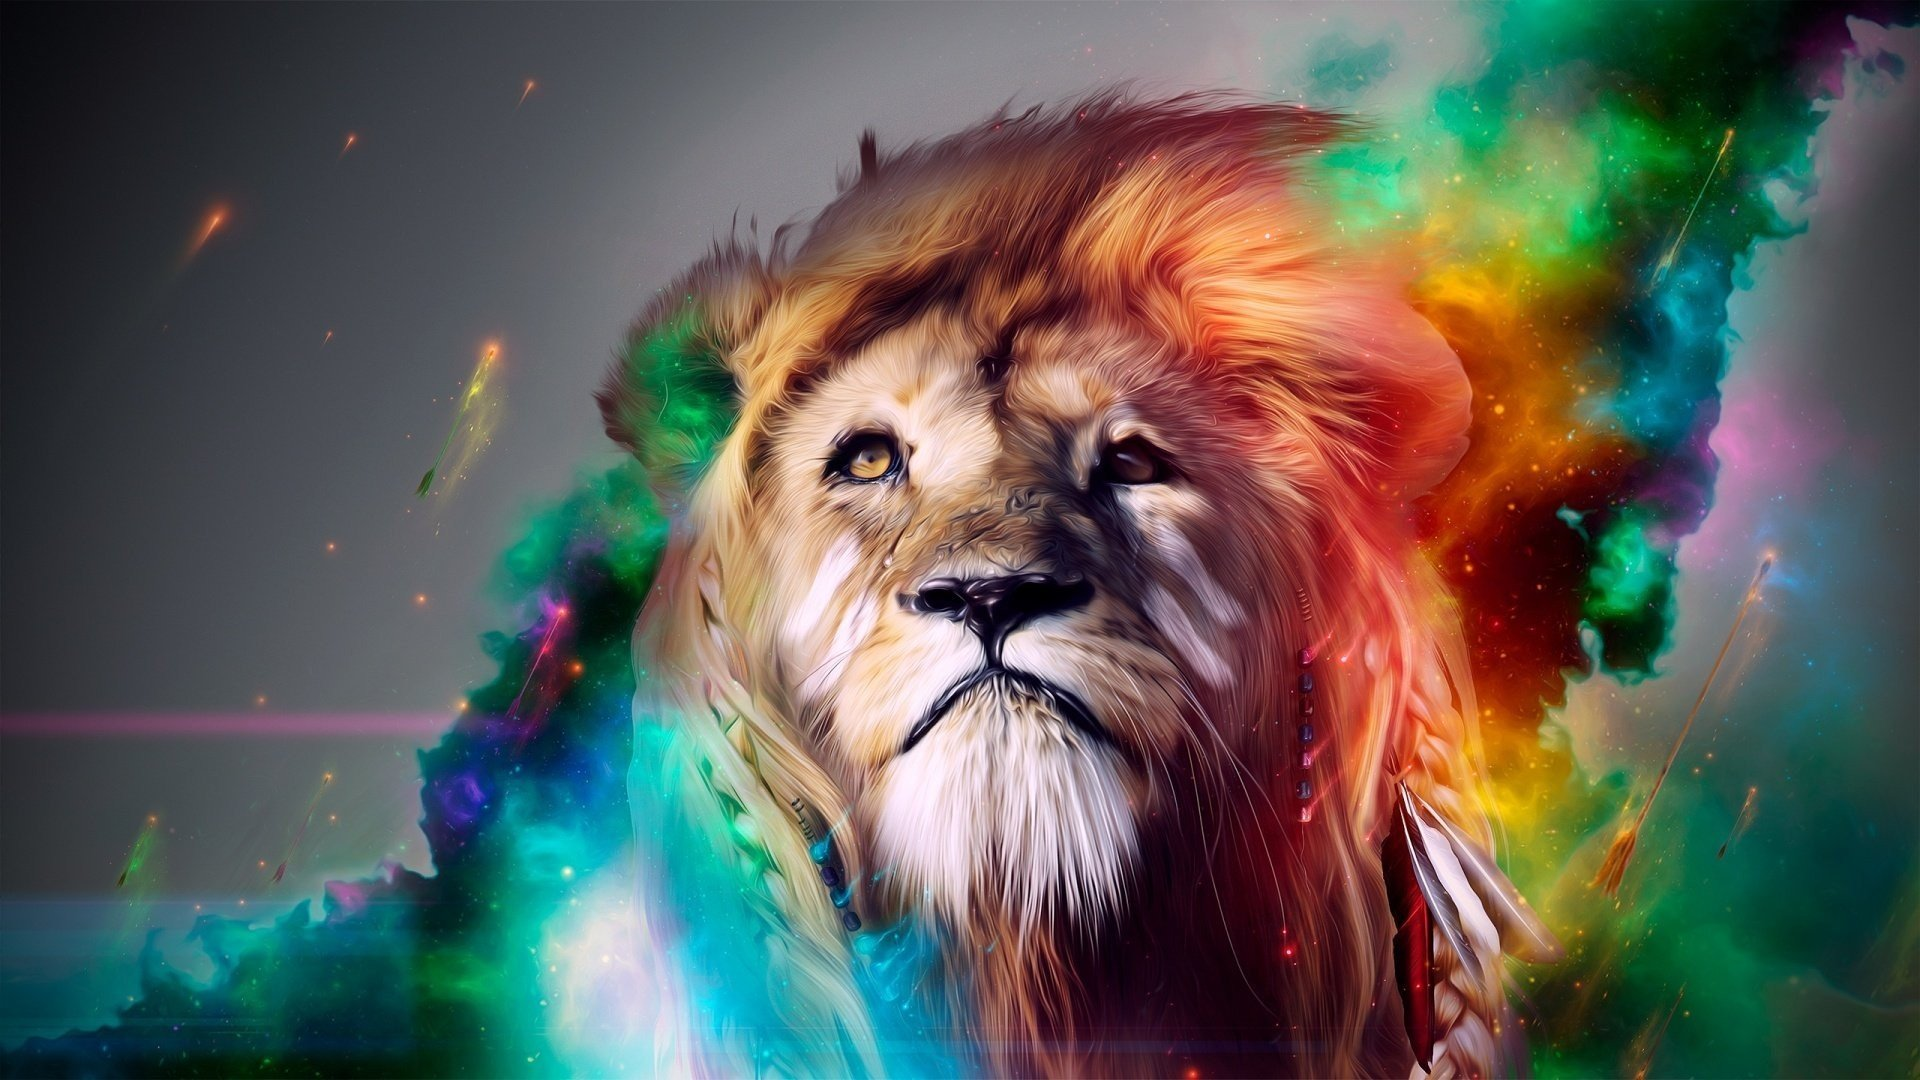 download Cool Backgrounds Of Animals 65 Images Excellent 1920x1080